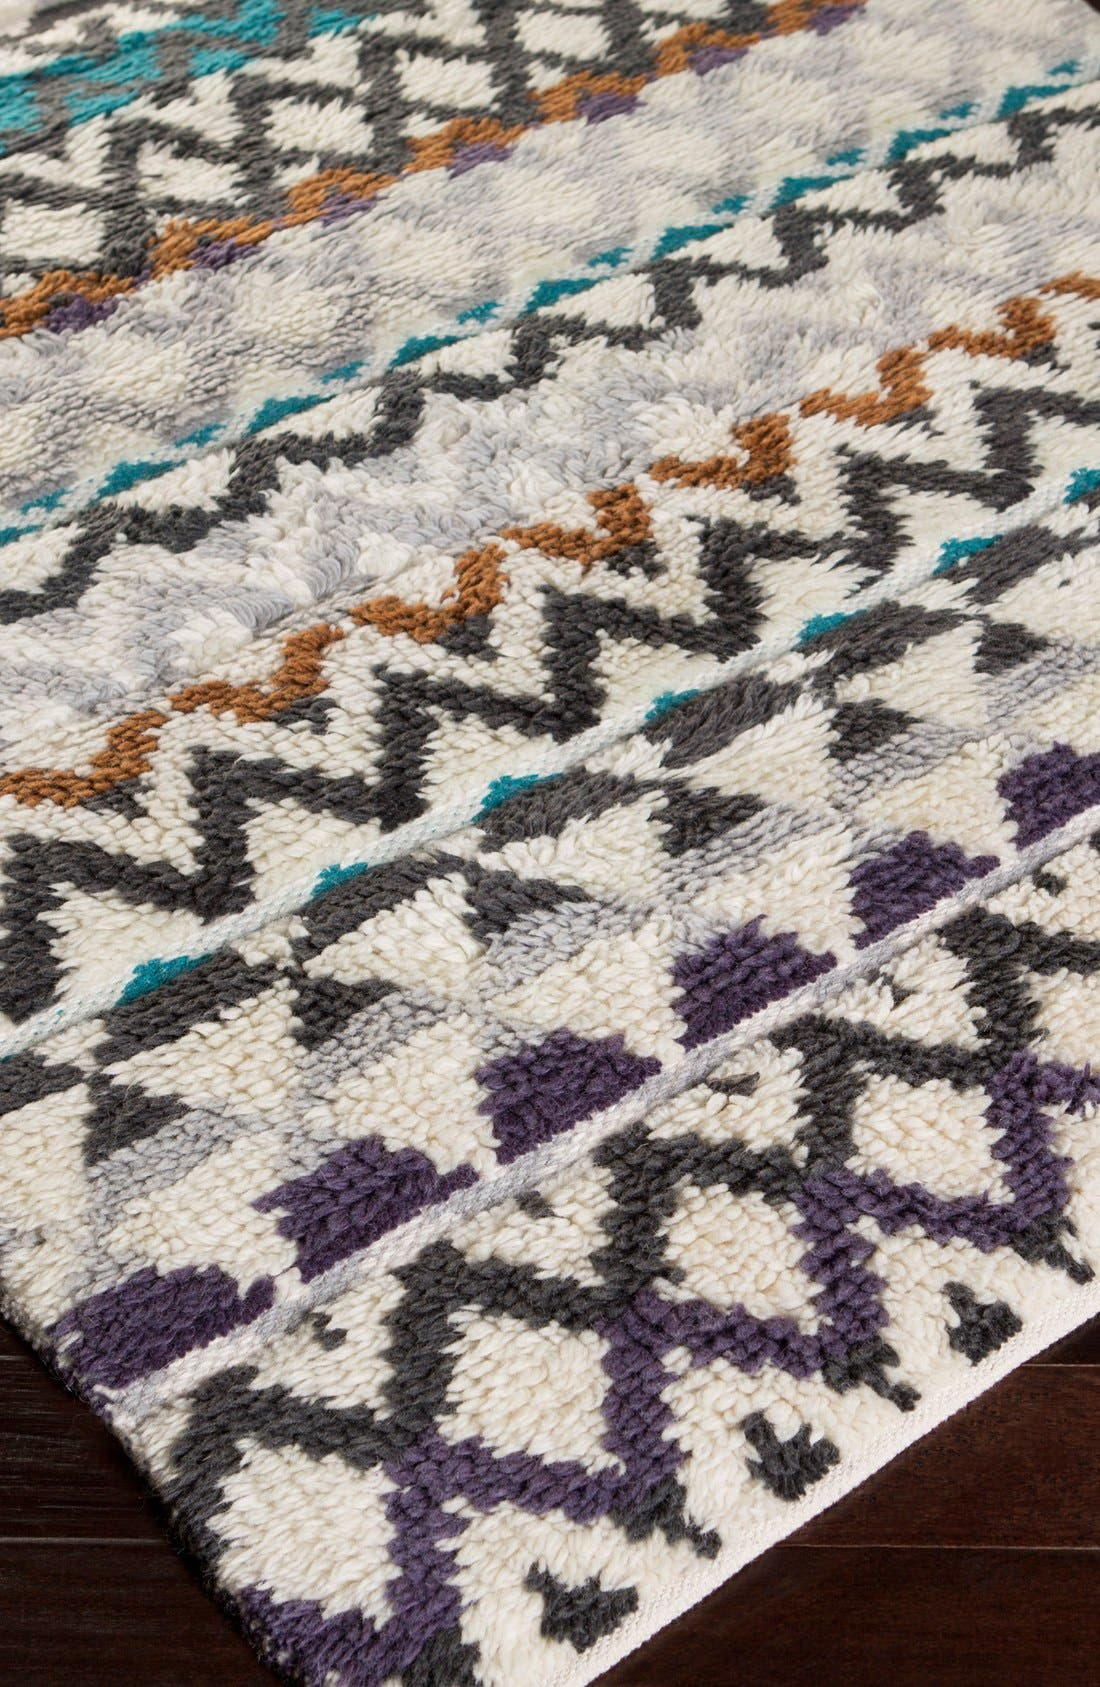 'Atticus' Hand Woven Wool Rug,                             Alternate thumbnail 2, color,                             500